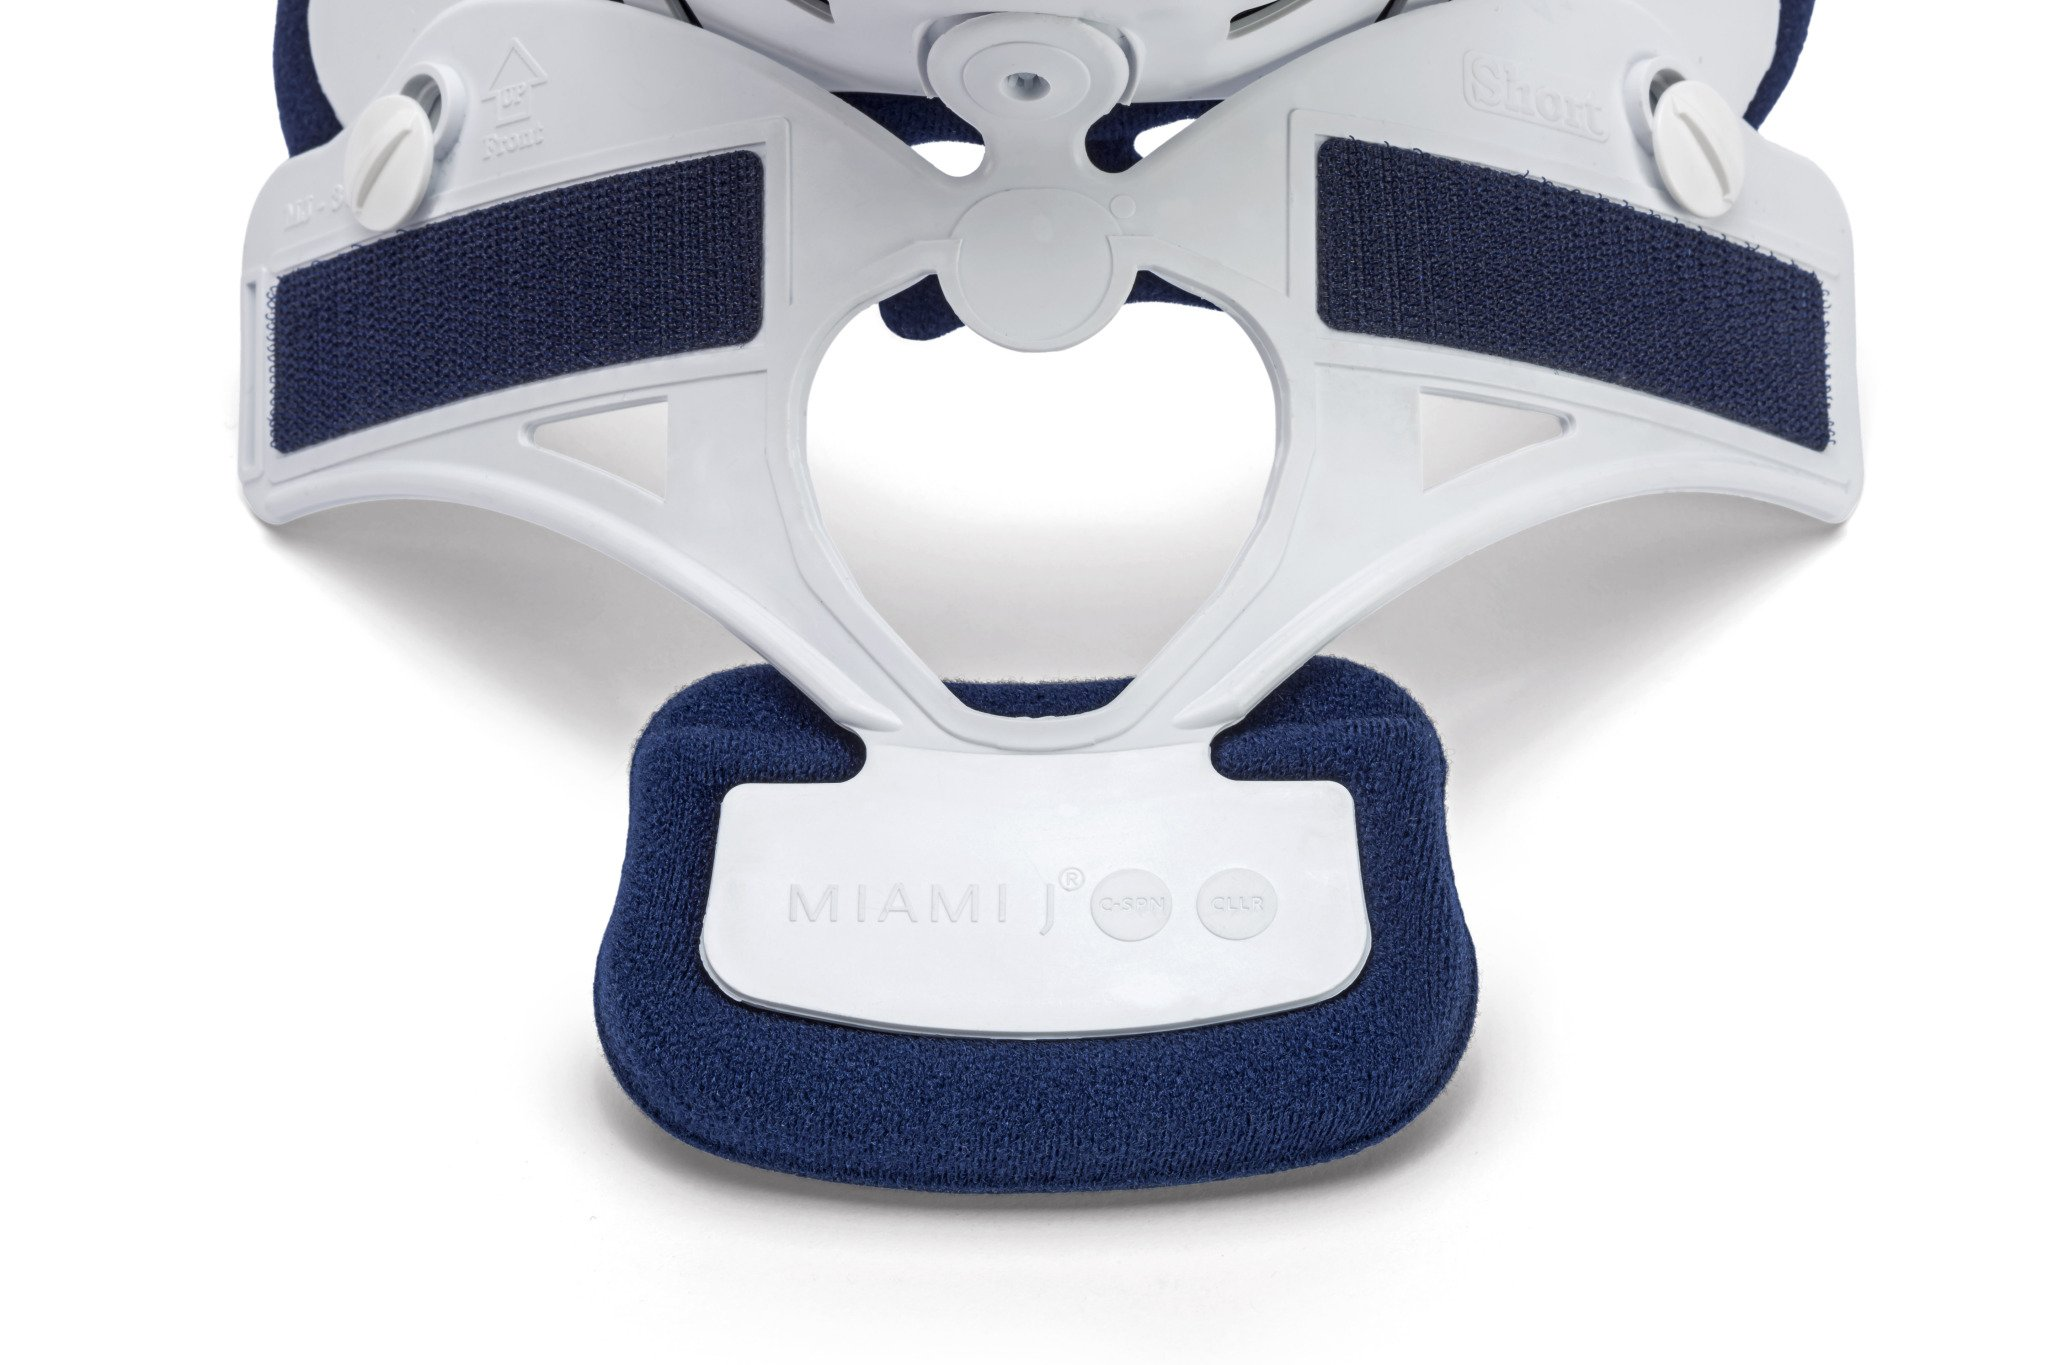 Ossur Miami J Cervical Neck Collar - C-Spine Vertebrae Immobilizer Semi-Rigid Antibacterial Pads for Patient Comfort - Relieves Pain & Pressure in Spine - MJ-250 X-Small by Ossur (Image #3)